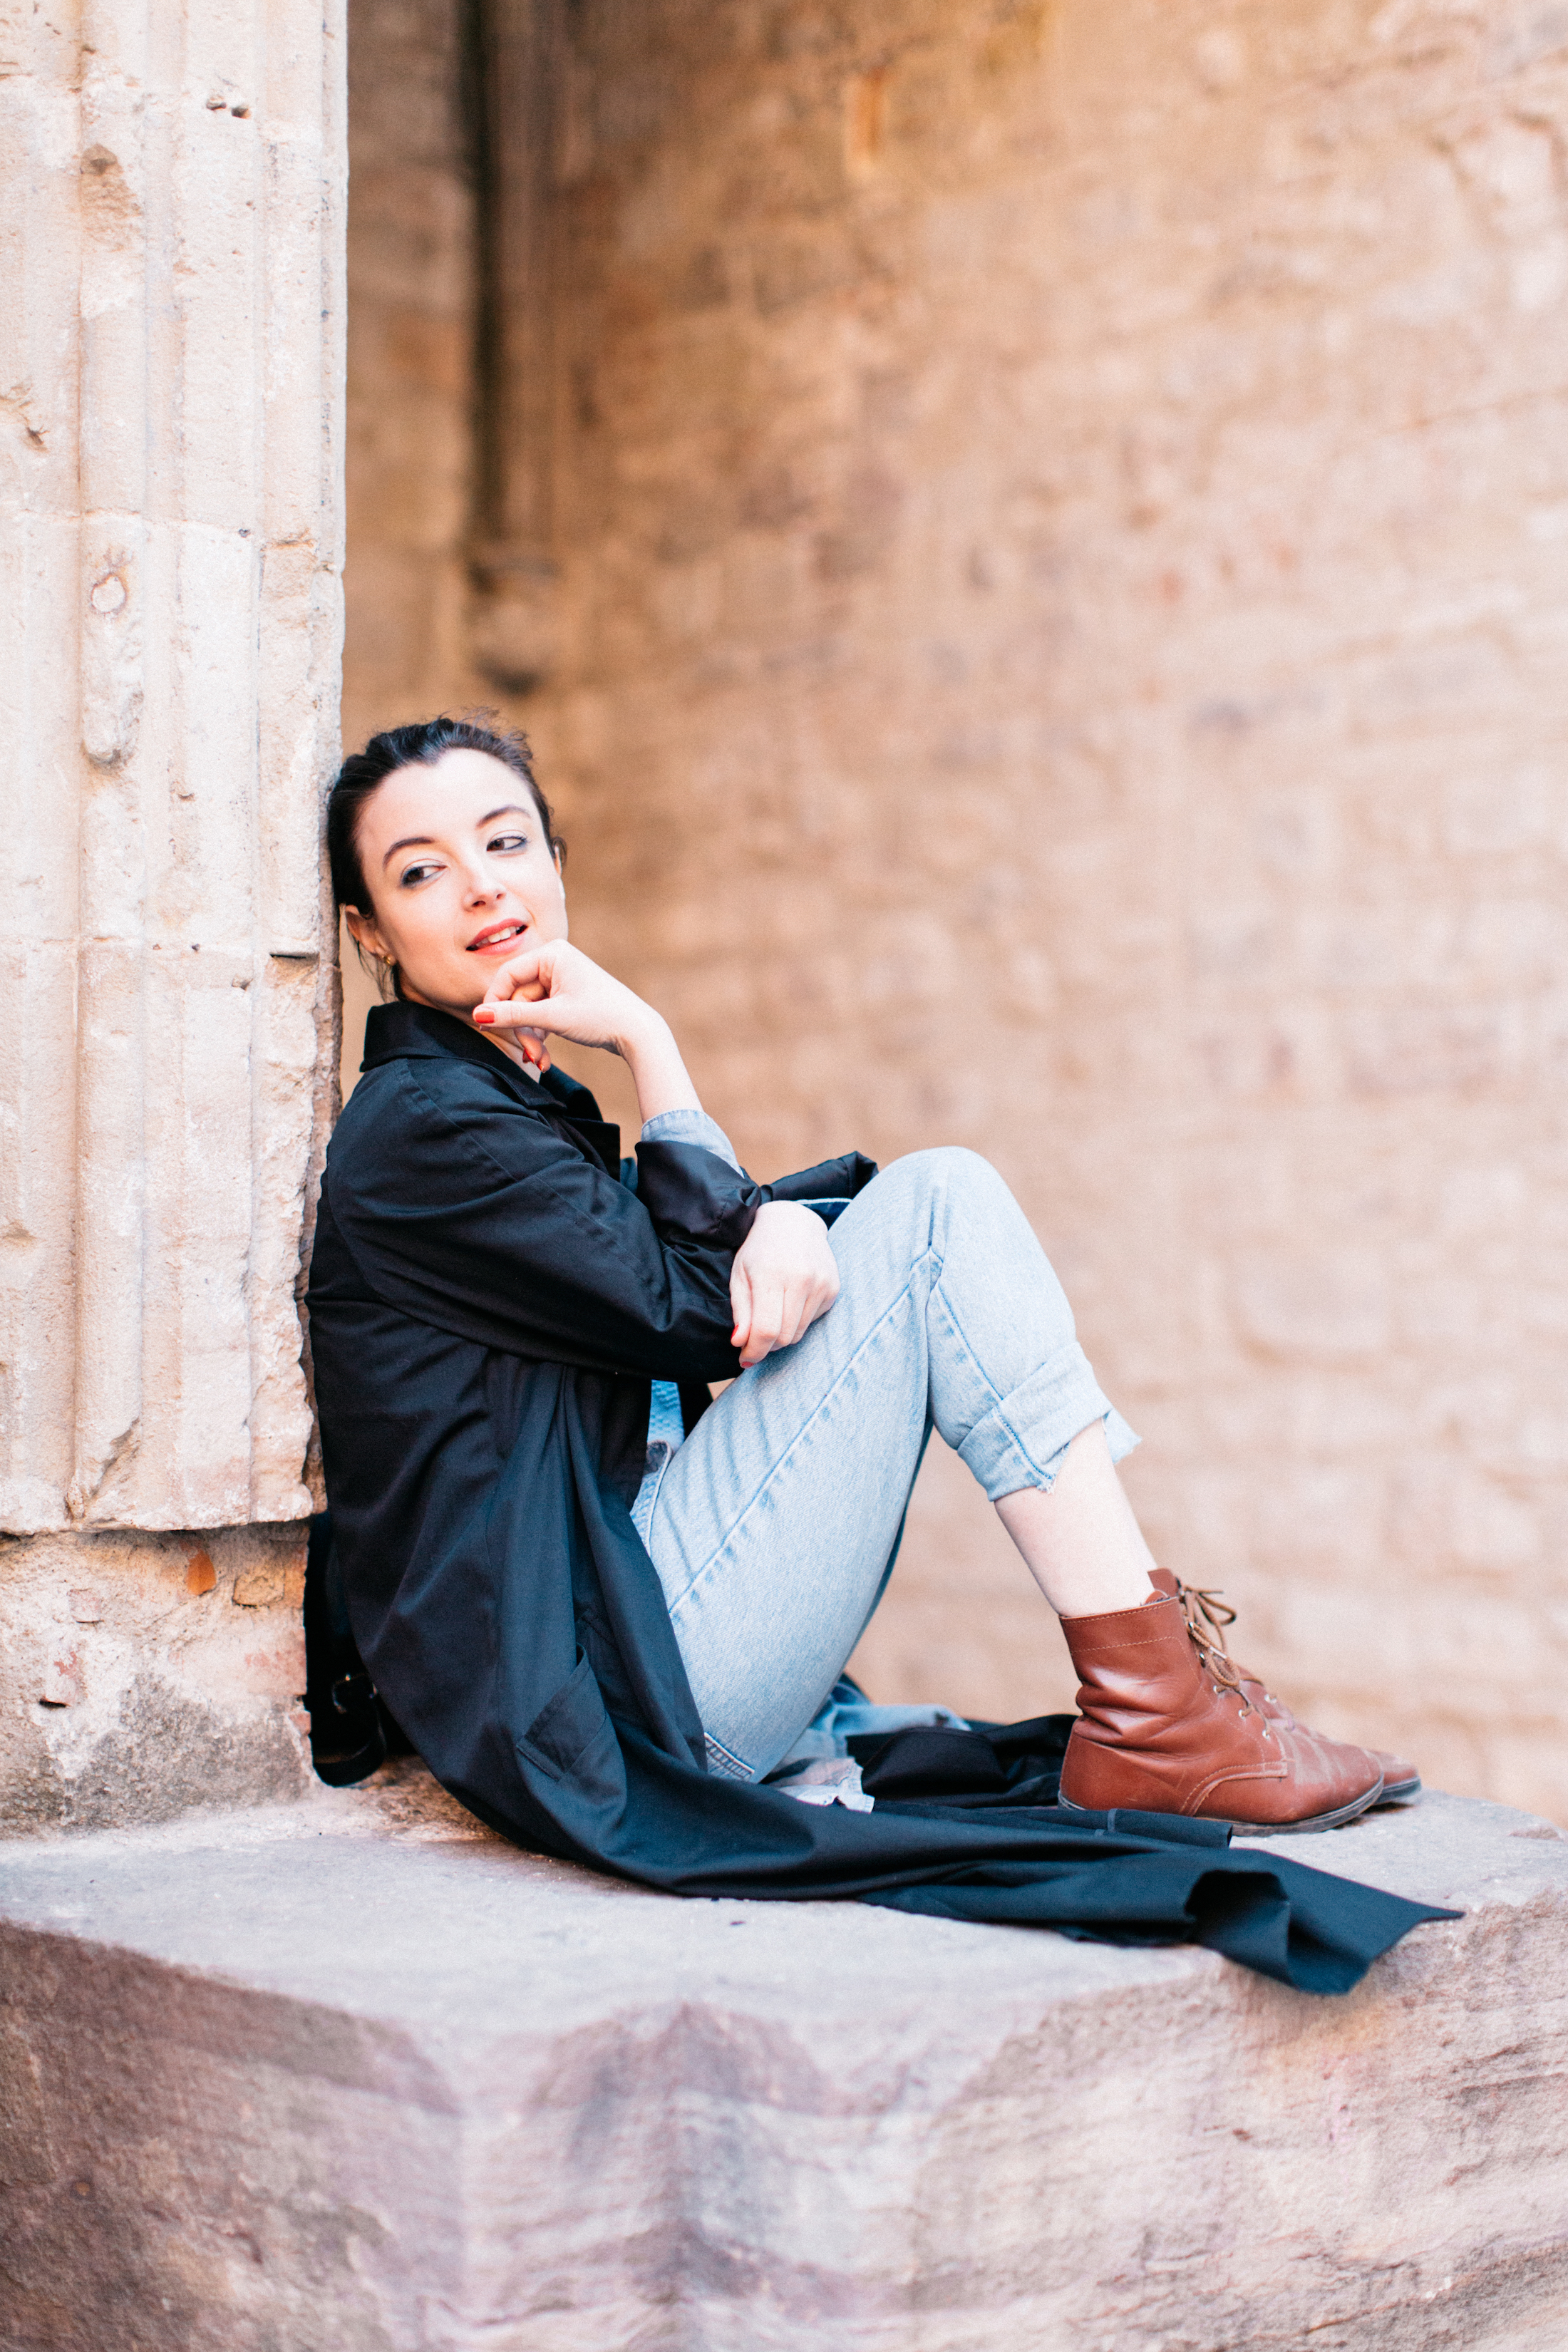 Martina from Barcelona generously acted as our model during the photowalk. Flytographer:  Natalie